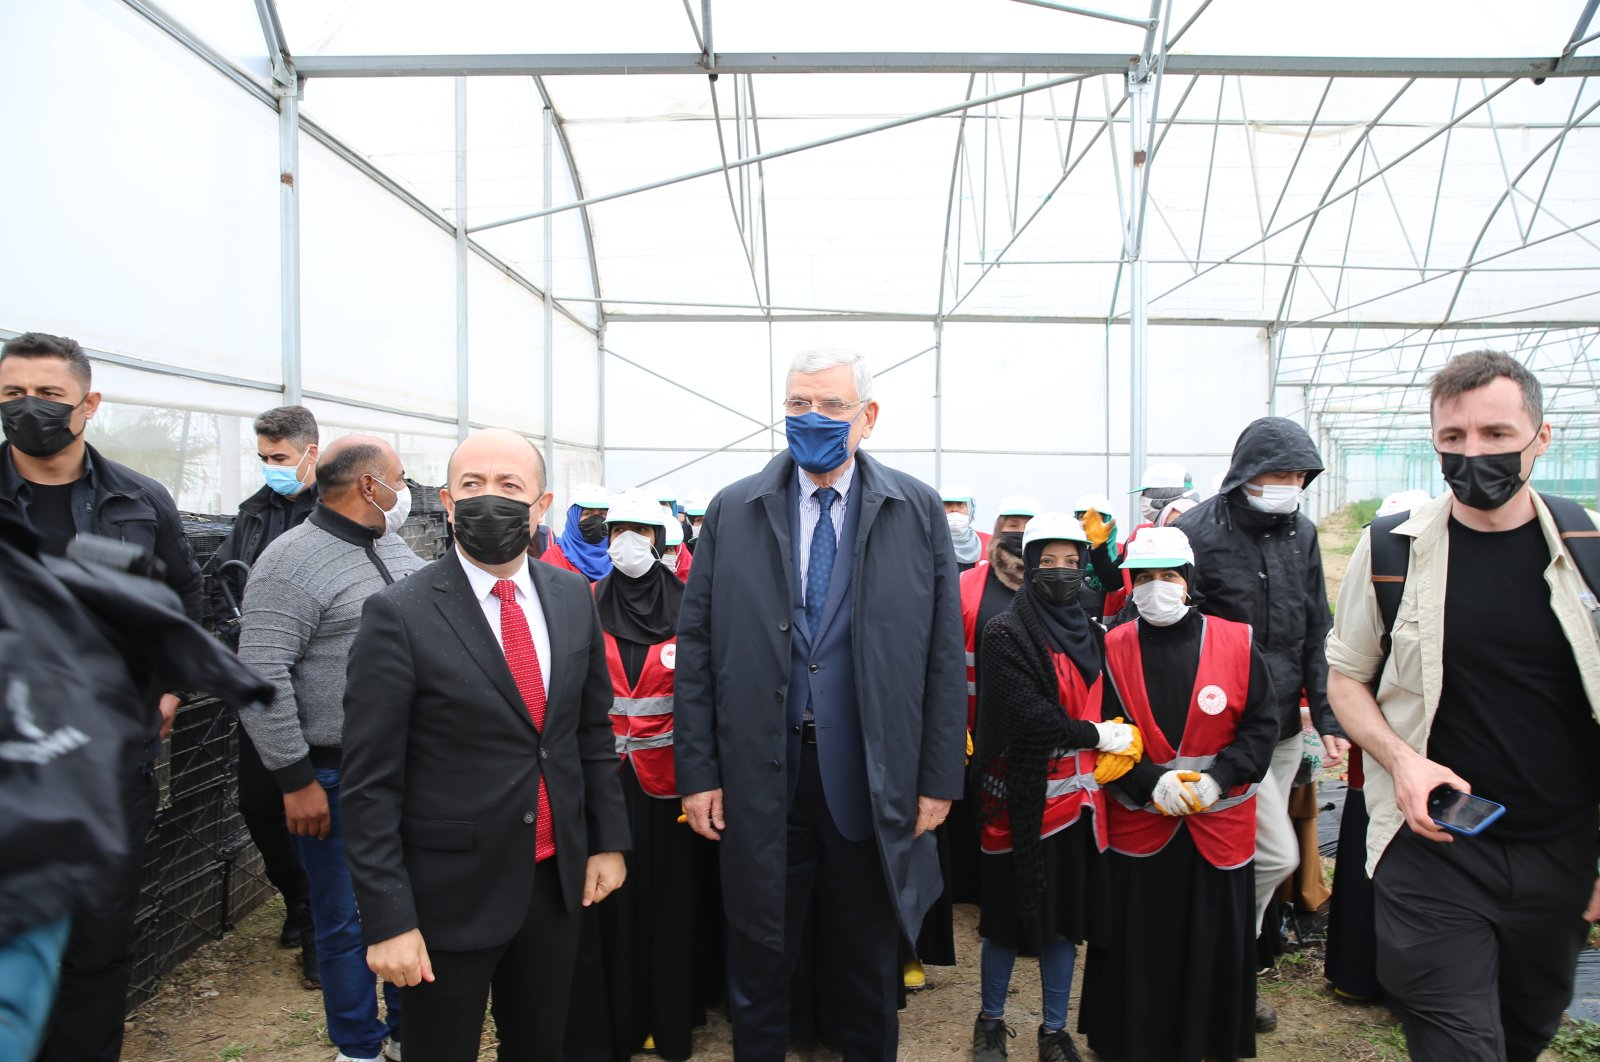 Volkan Bozkır (C), the head of the 75th session of the United NationsGeneral Assembly, visits a temporary refugee center in southern Turkey's Hatay, April 10, 2021. (AA Photo)